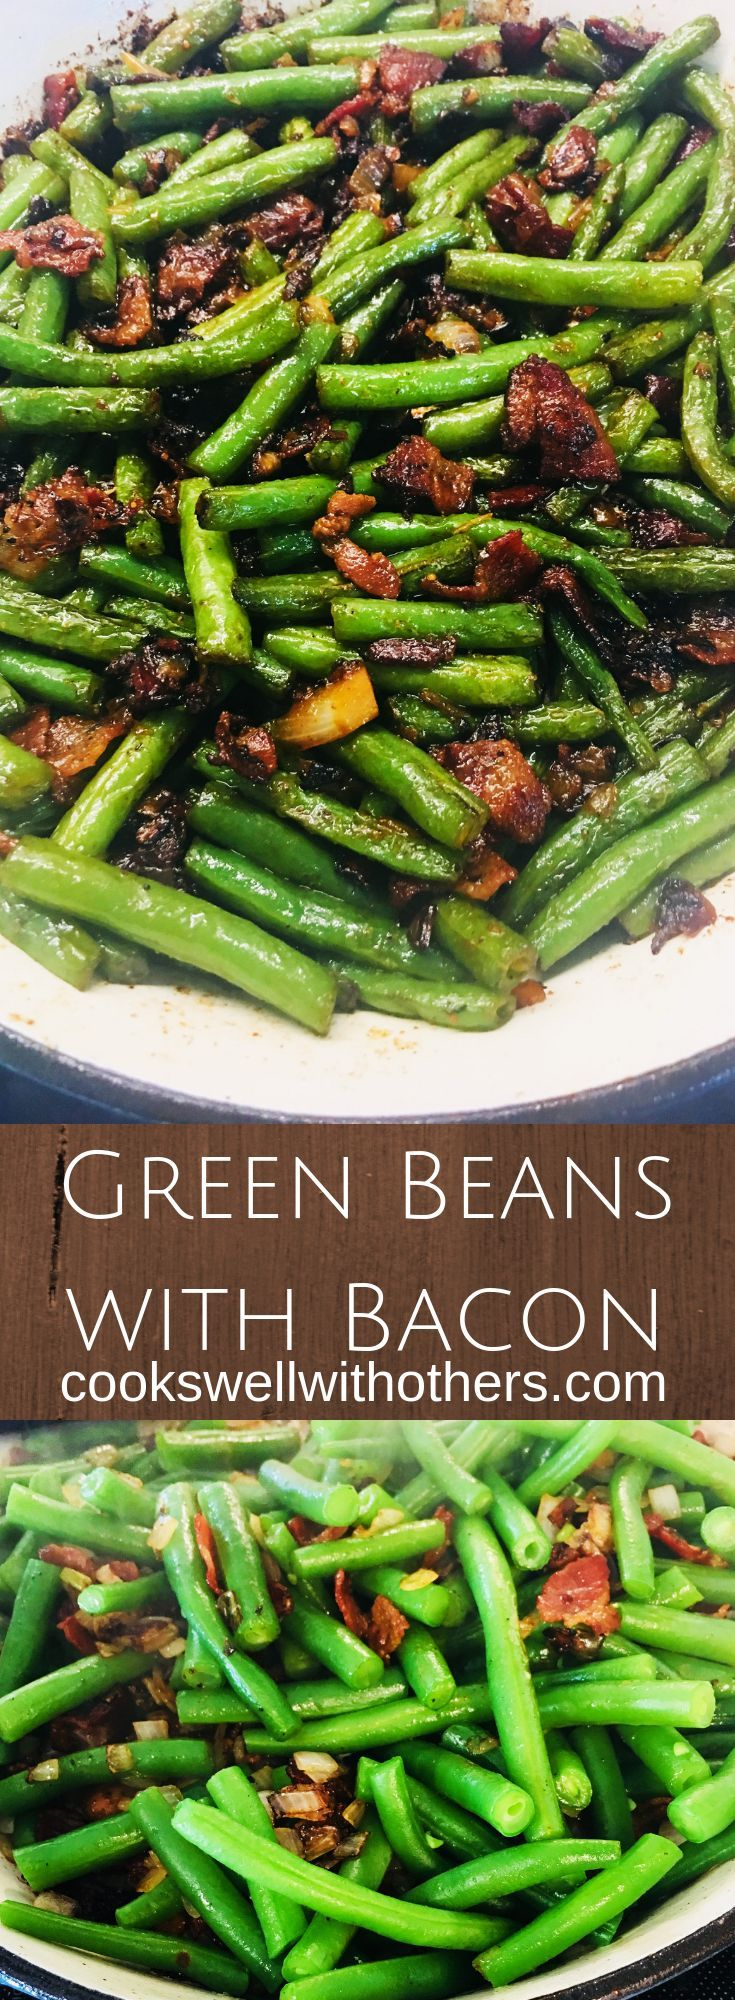 Green Beans with Bacon #greenbean